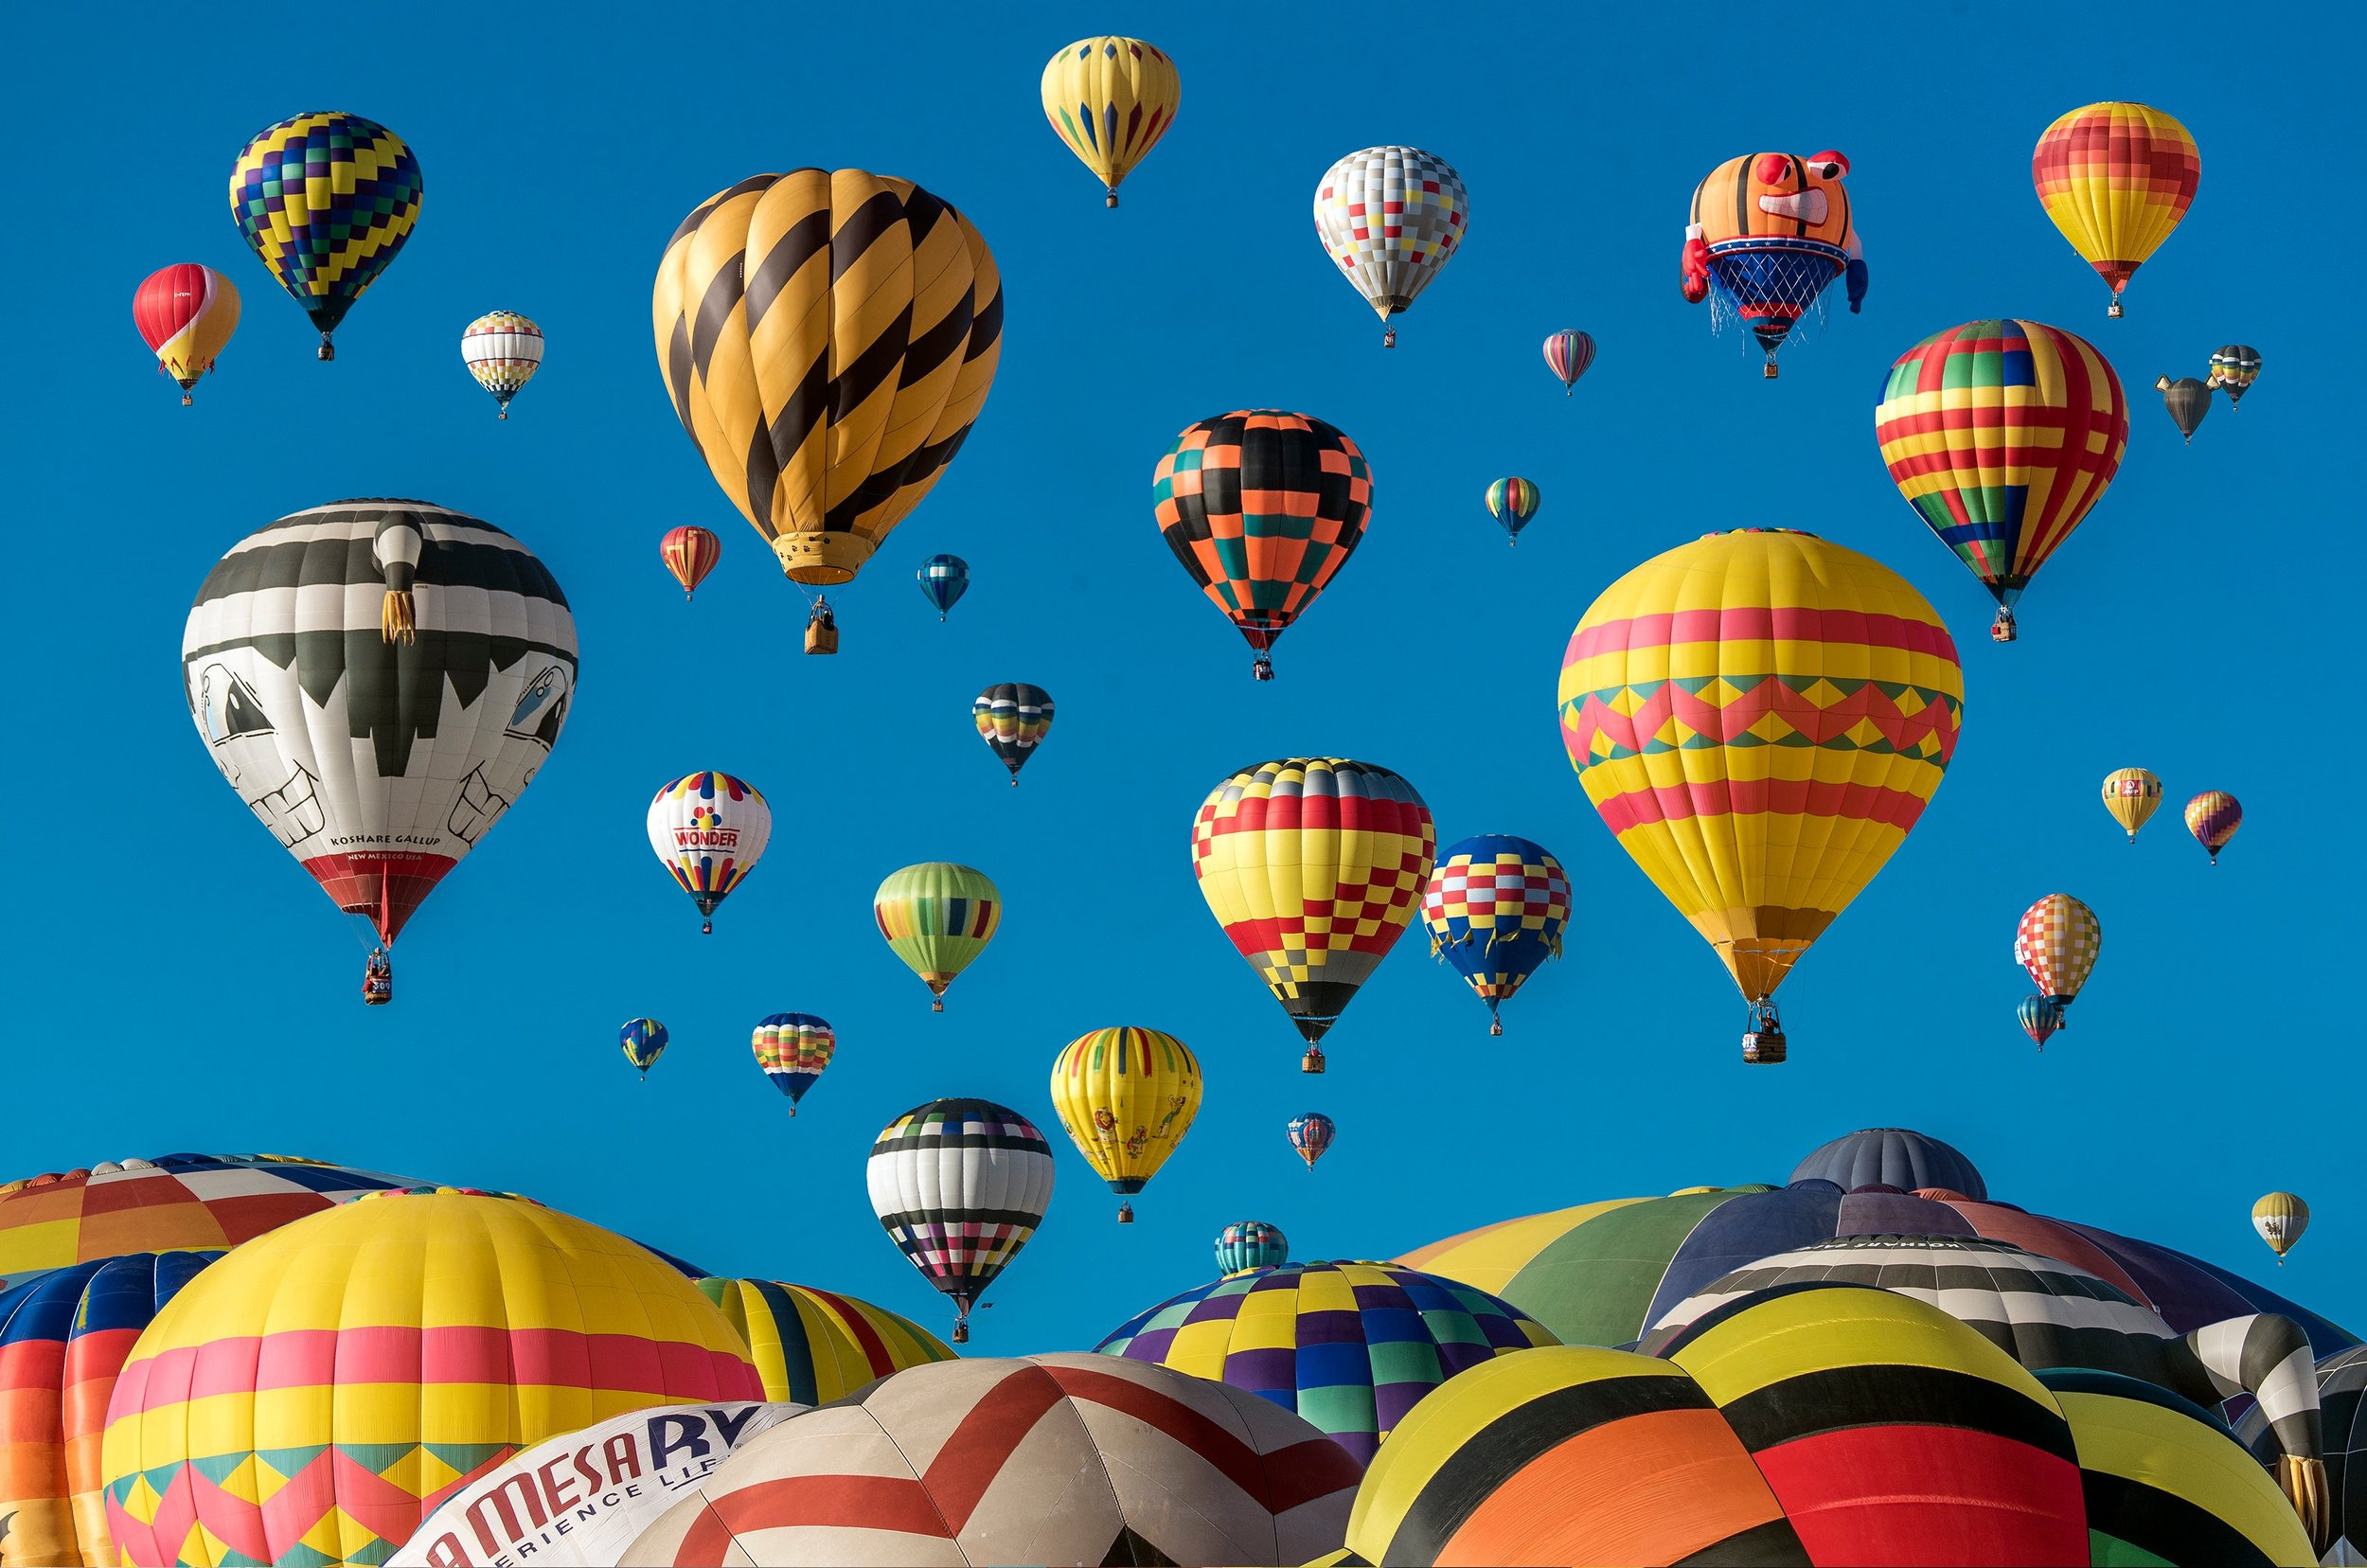 An Unsplash photo of hot air balloons in my hometown, Albuquerque, NM.